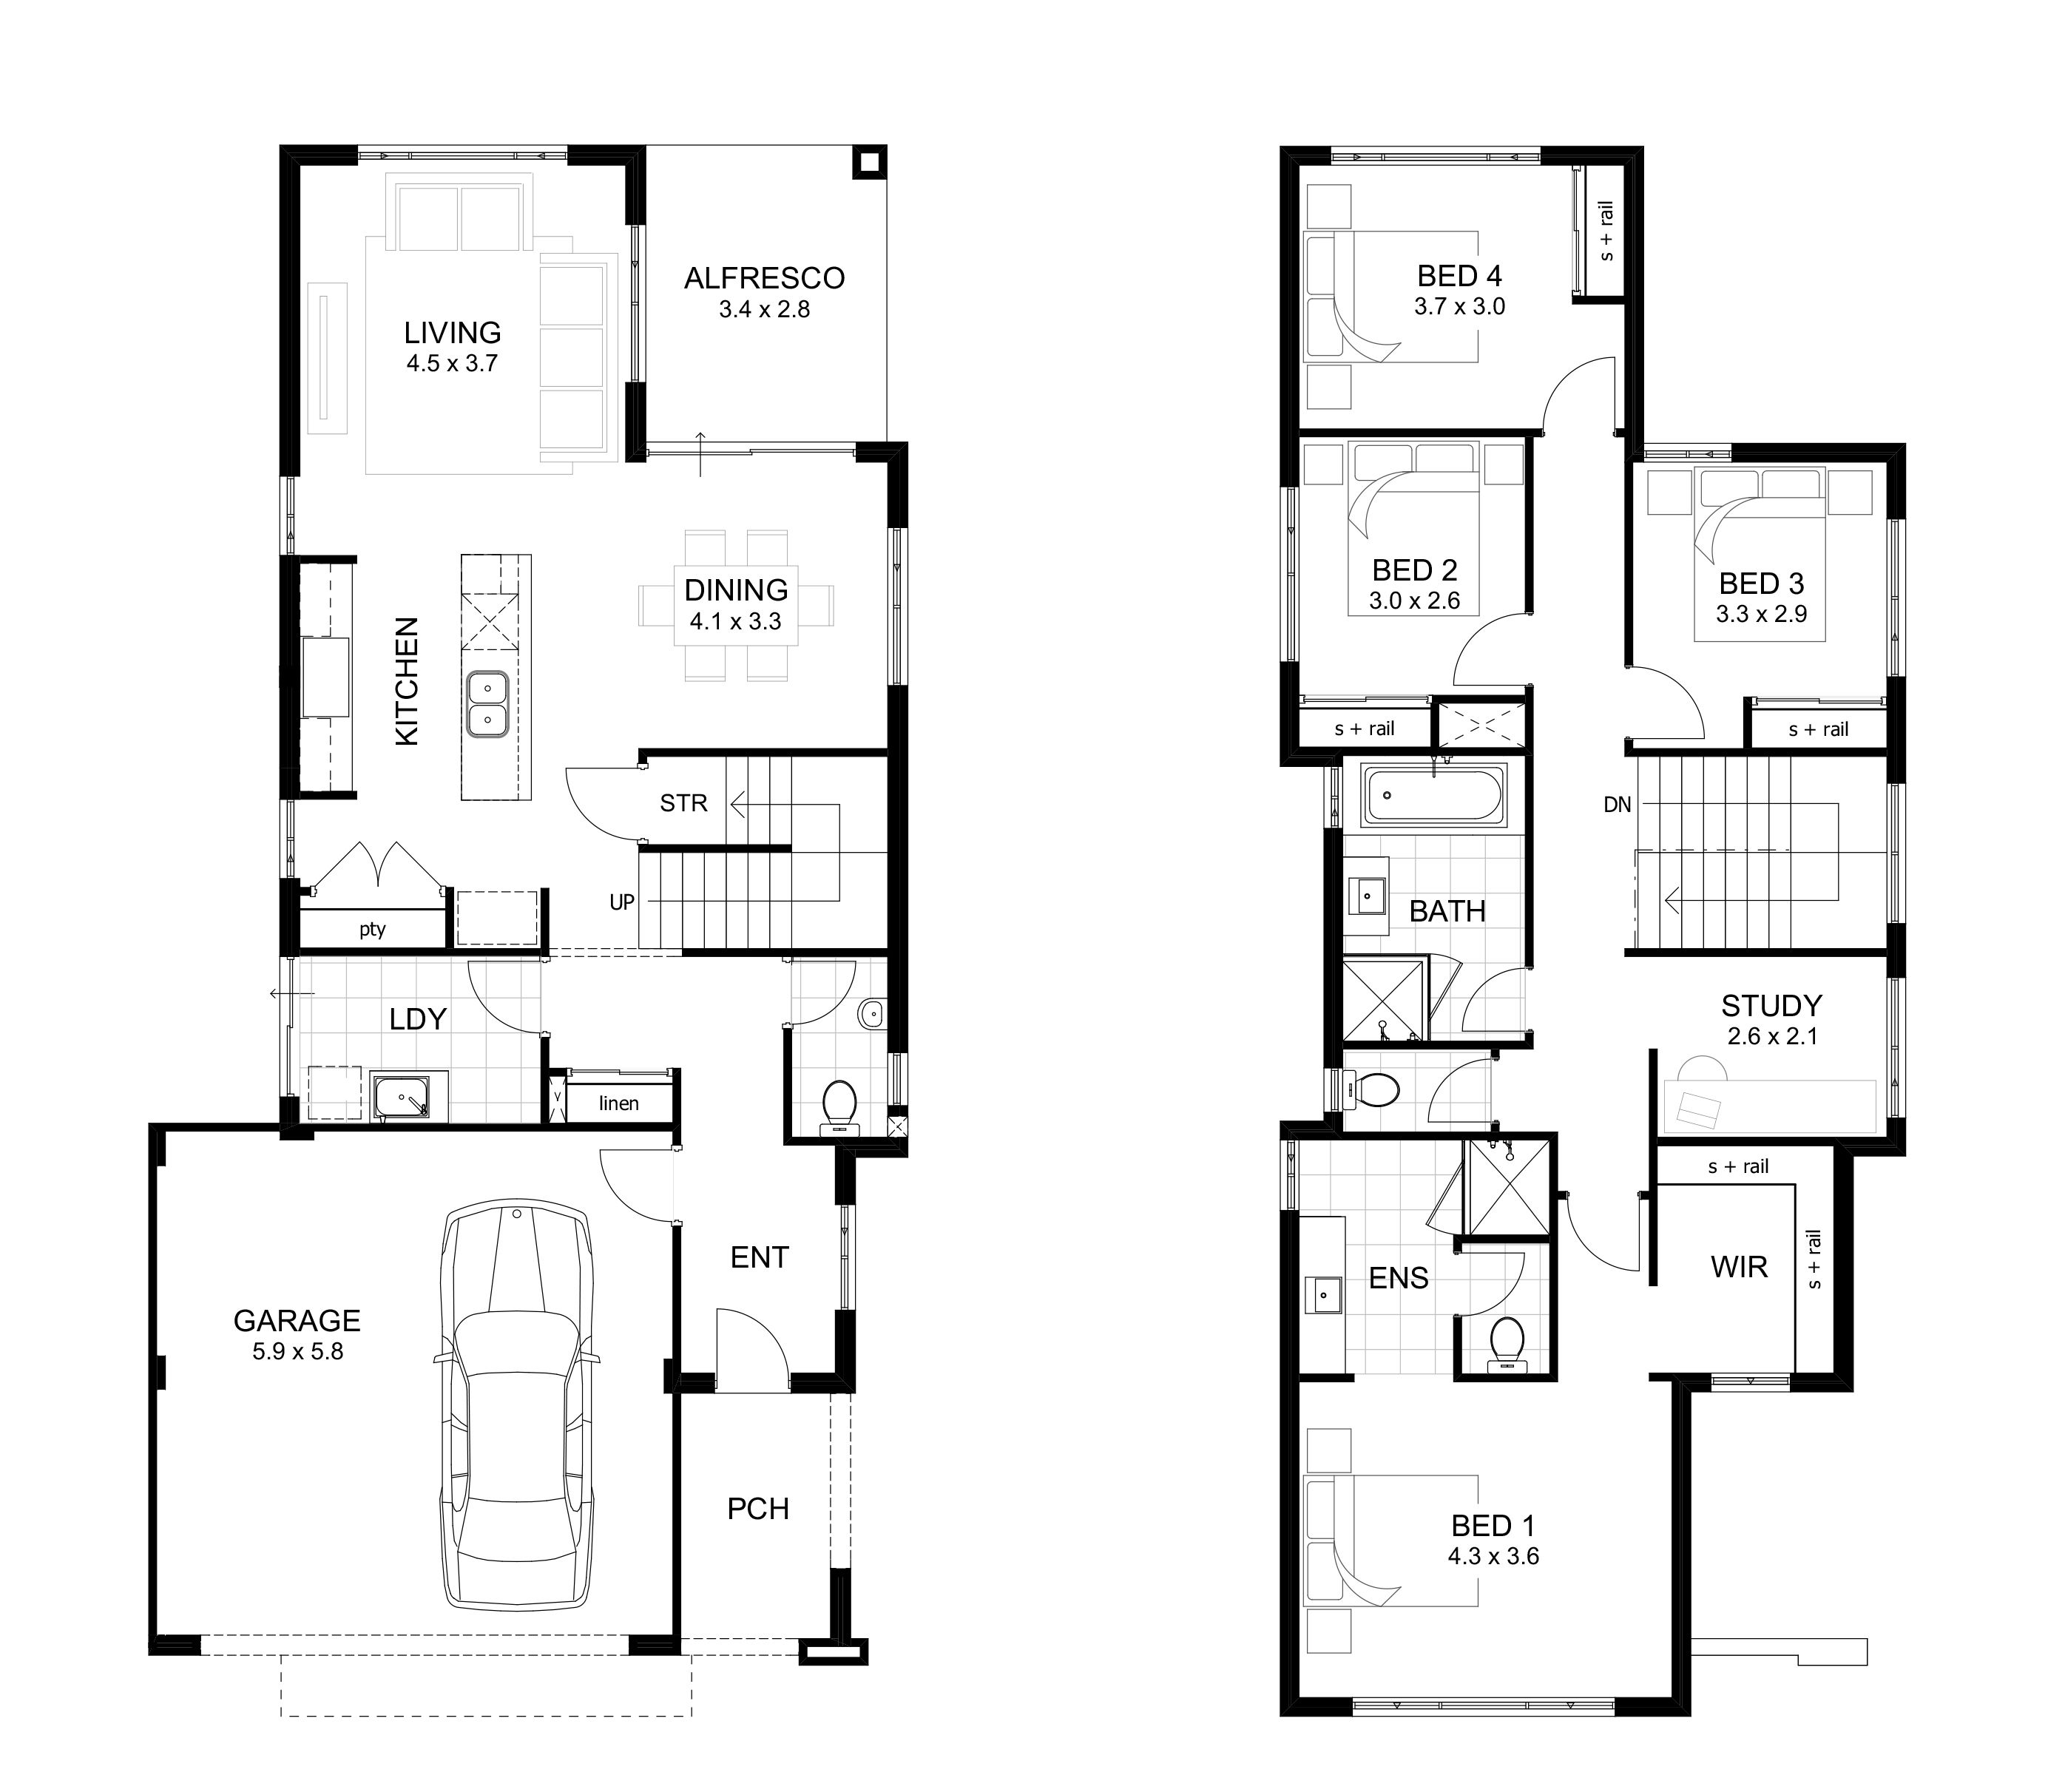 Home Designs Perth Apg Homes Double Storey House Plans 4 Bedroom House Plans Double Story House